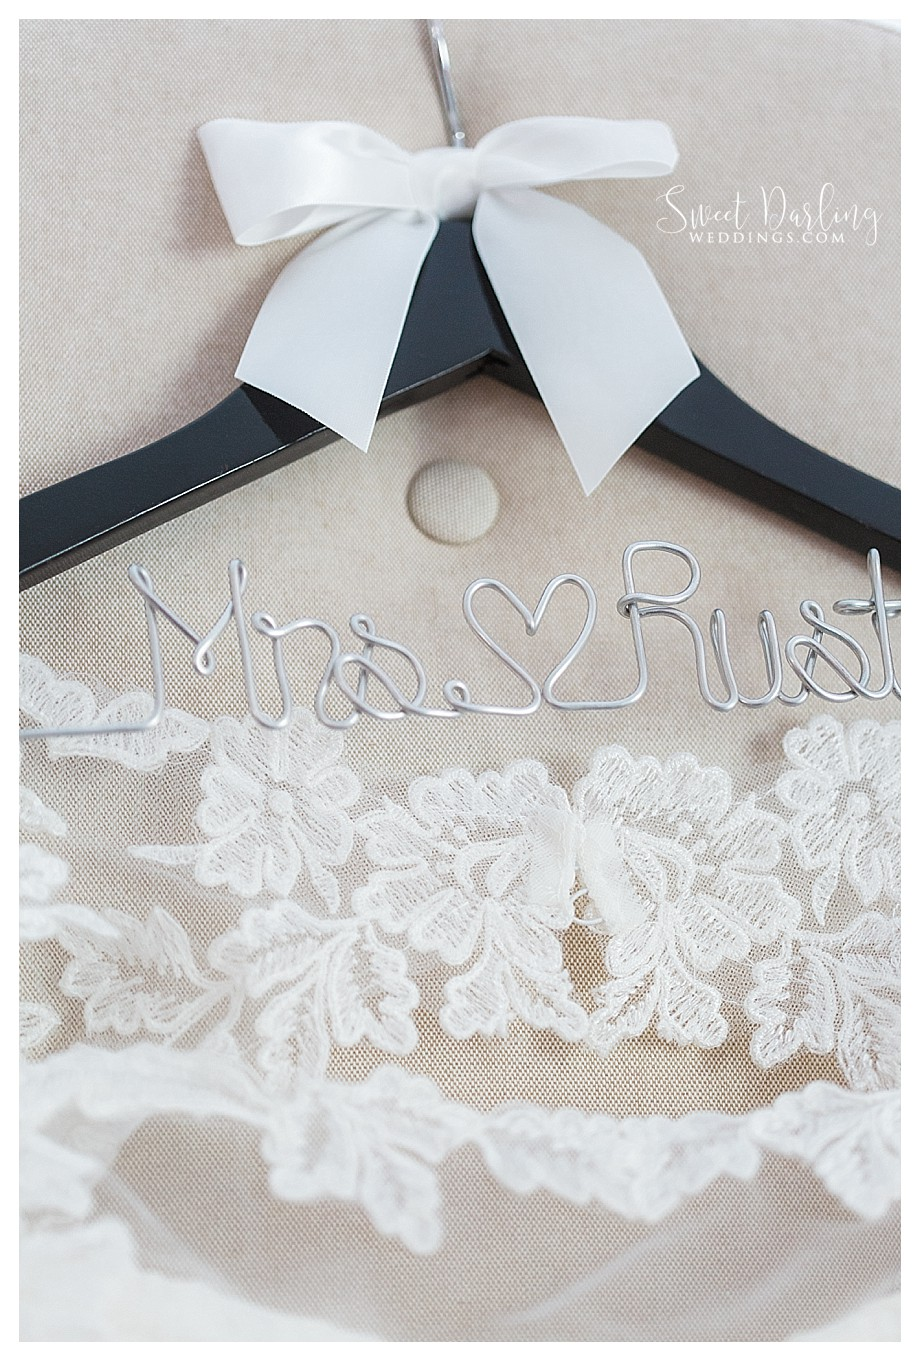 custom wedding wooden hanger holds lace wedding gown